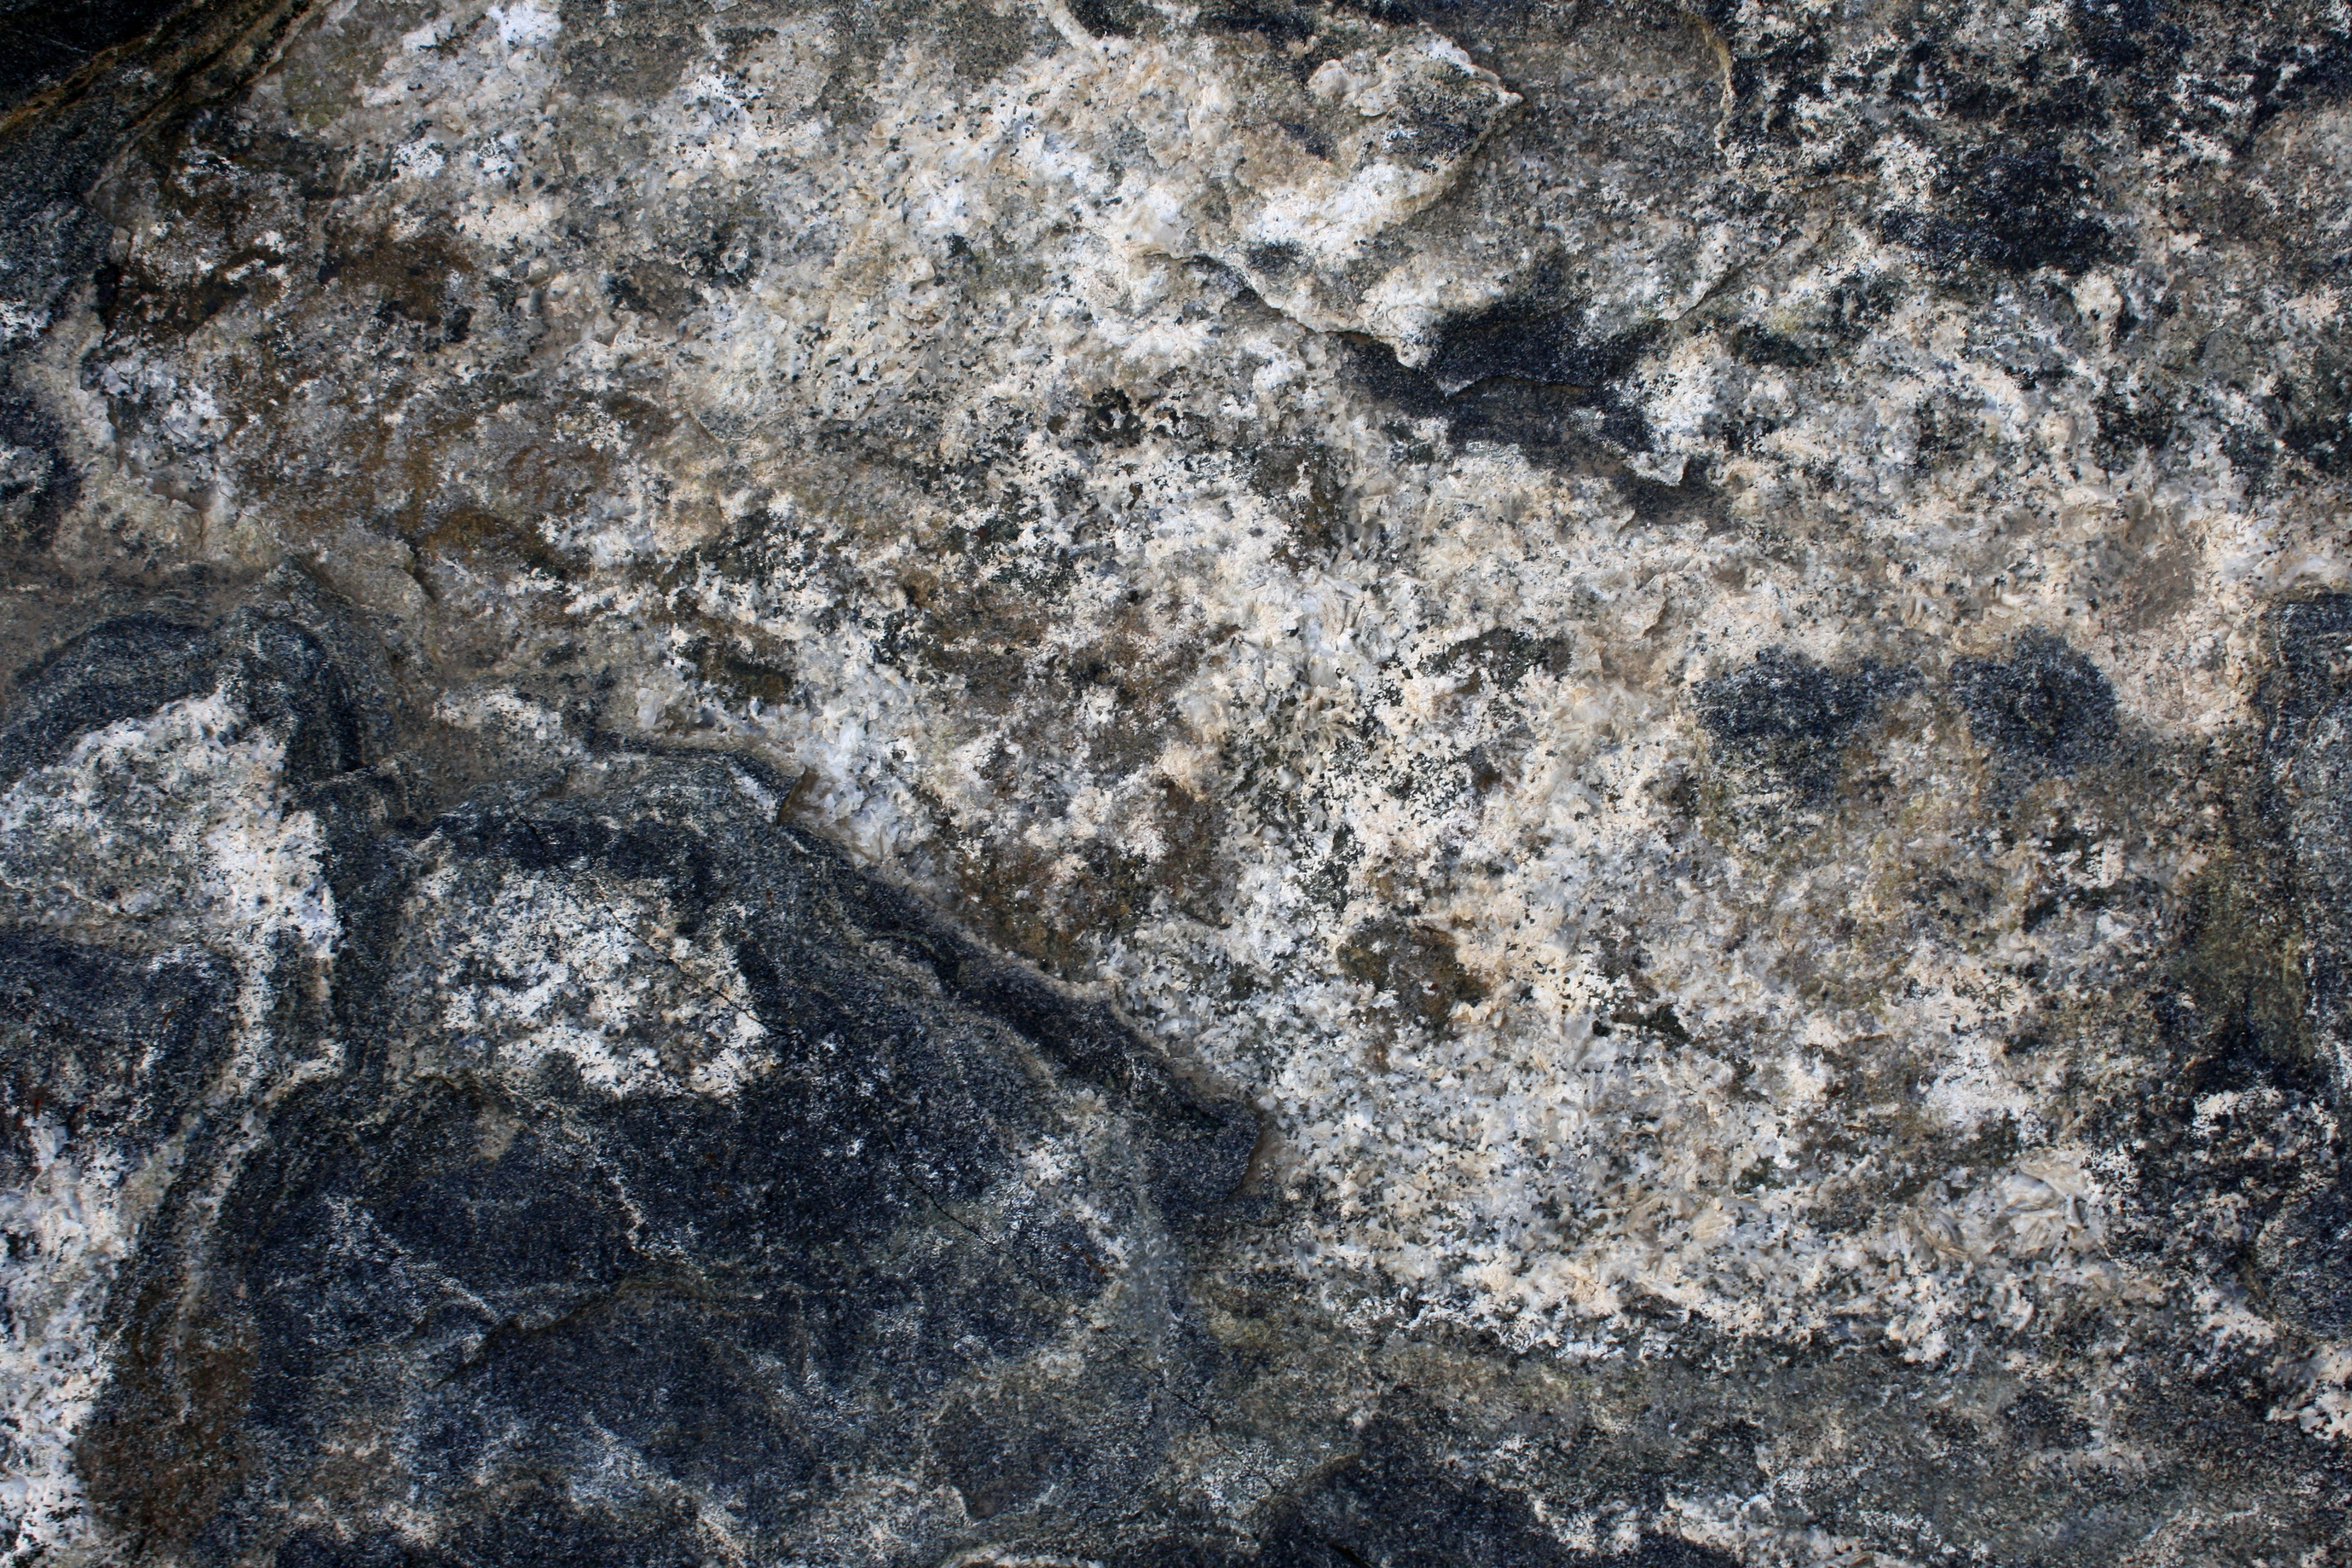 White Metamorphic Rock : Black and white metamorphic rock texture picture free